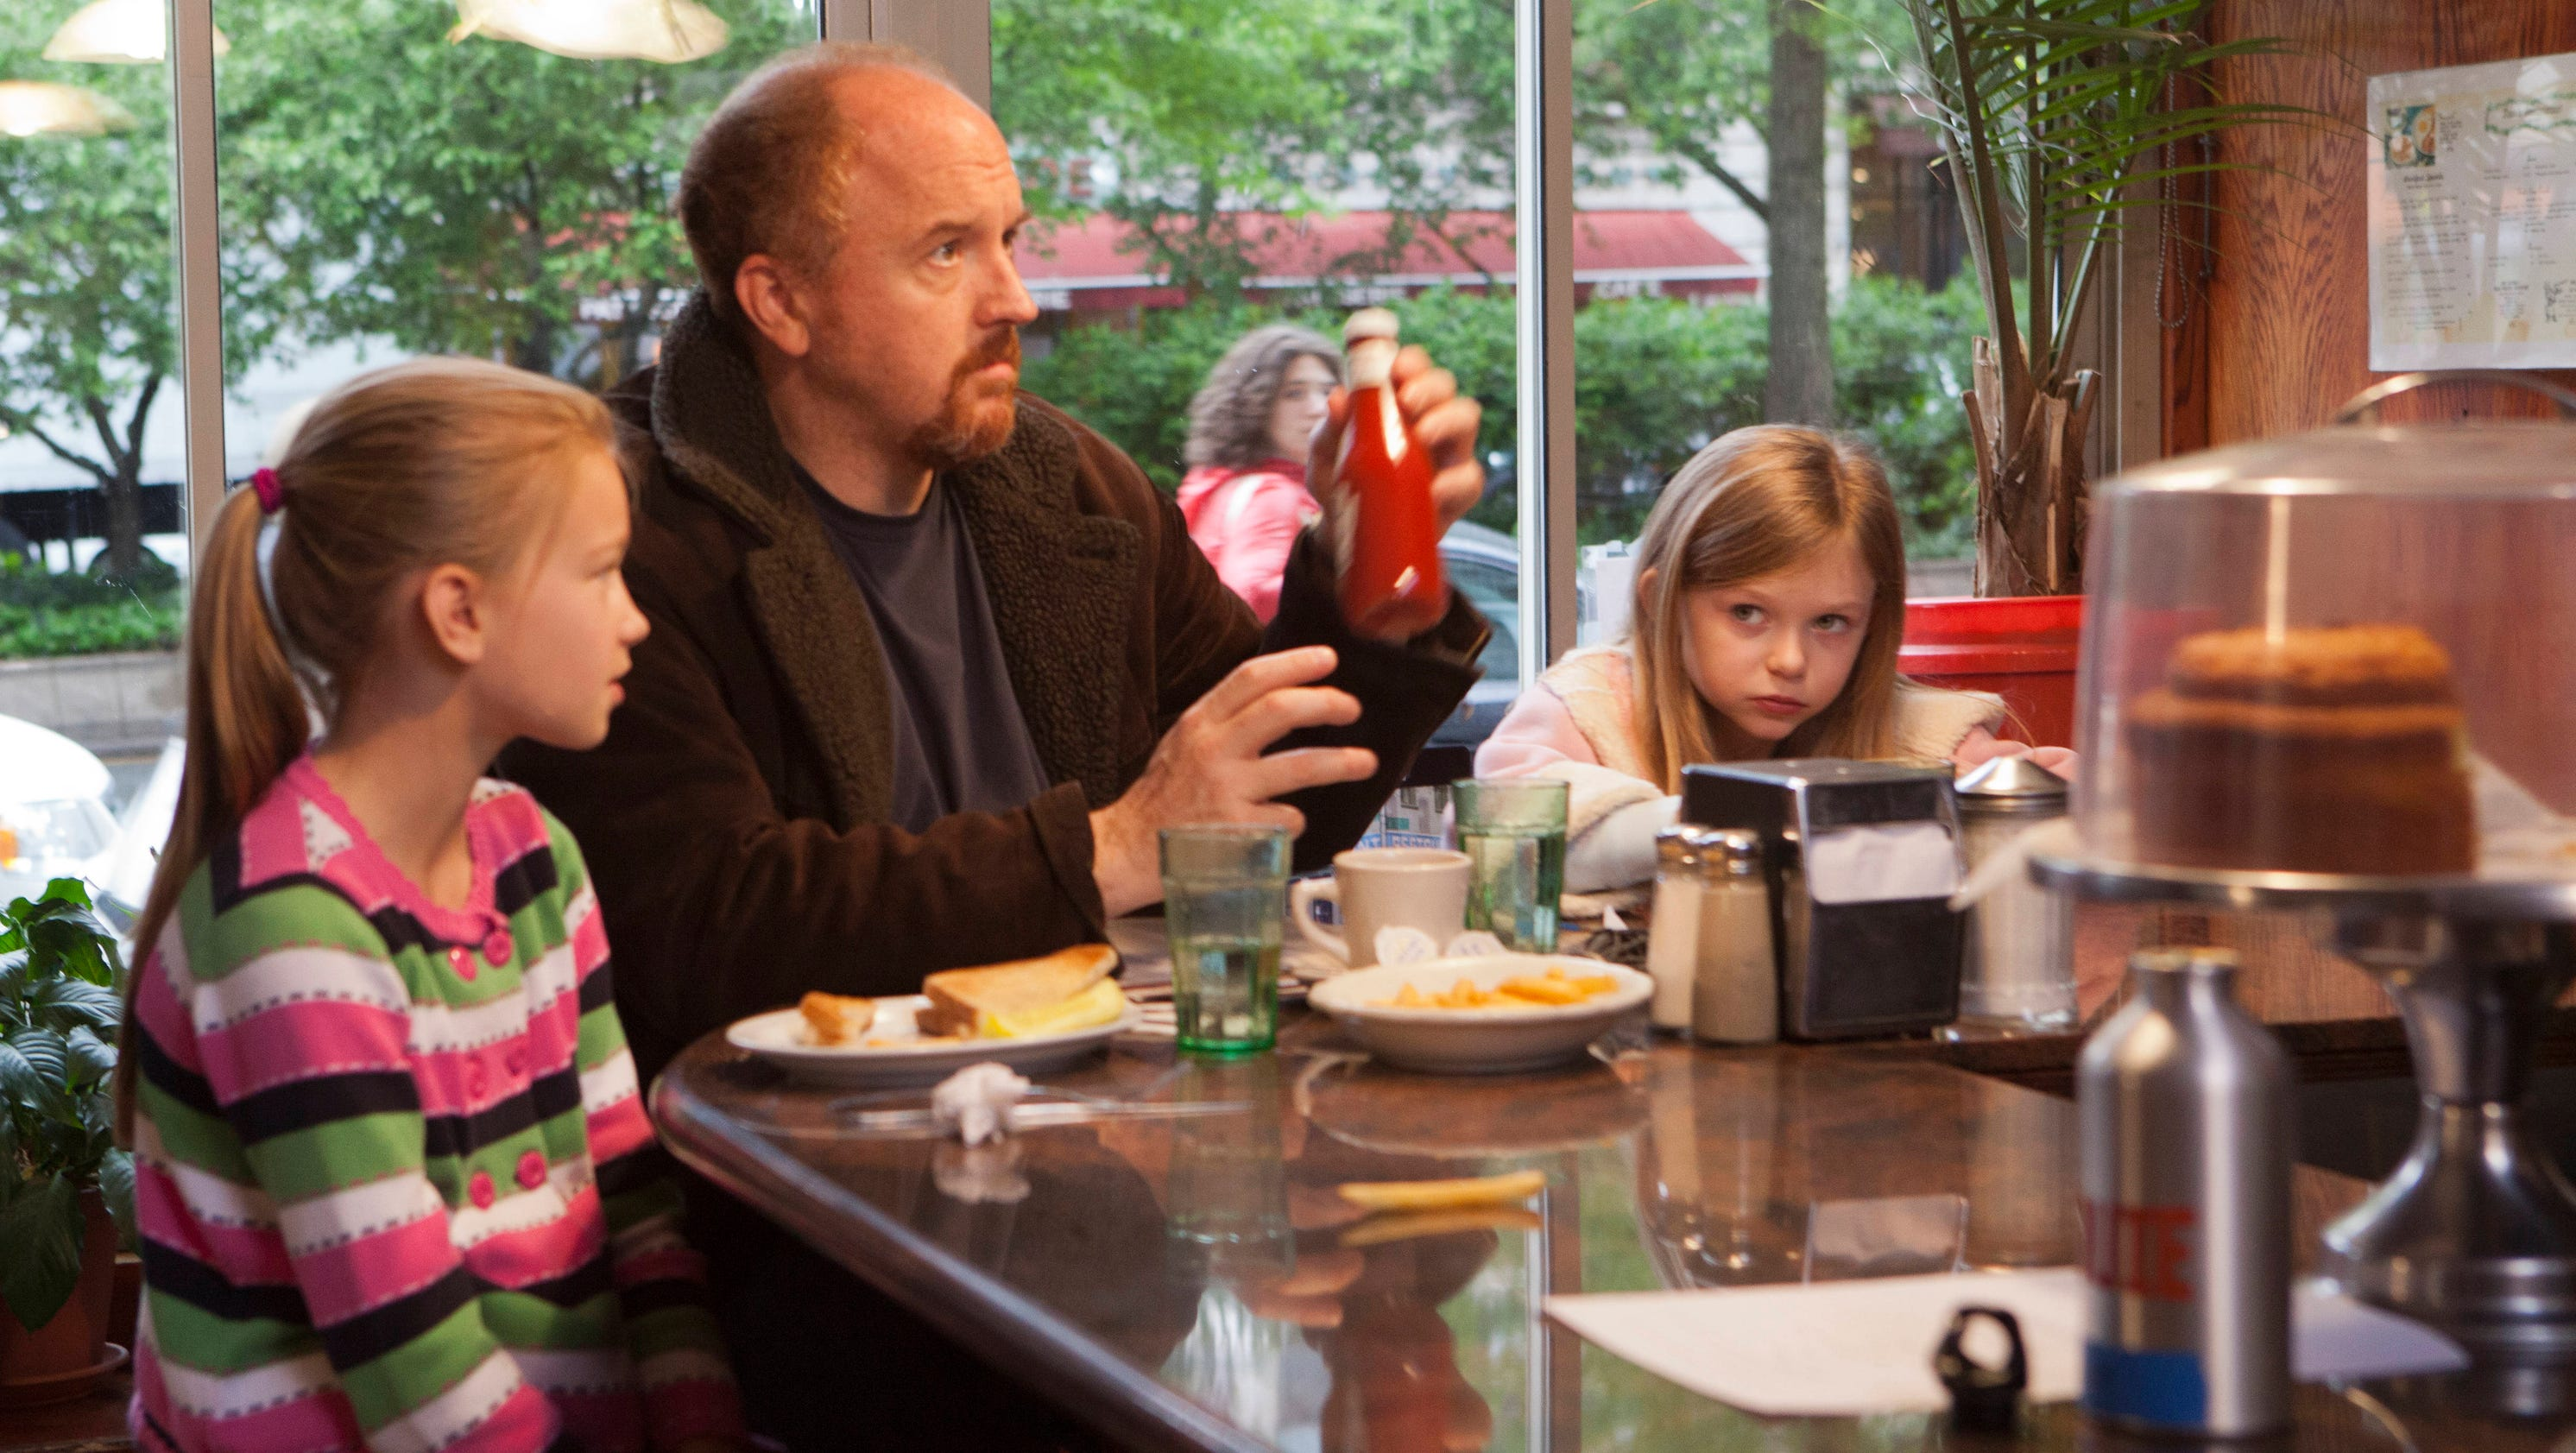 louis ck dating history Louis ck's twitter is a carefully-constructed blend of comedy, supporting comedy, and raging against injustice, and as such, he only follows three people: muhammad ali, colin quinn, and pamela adlon.